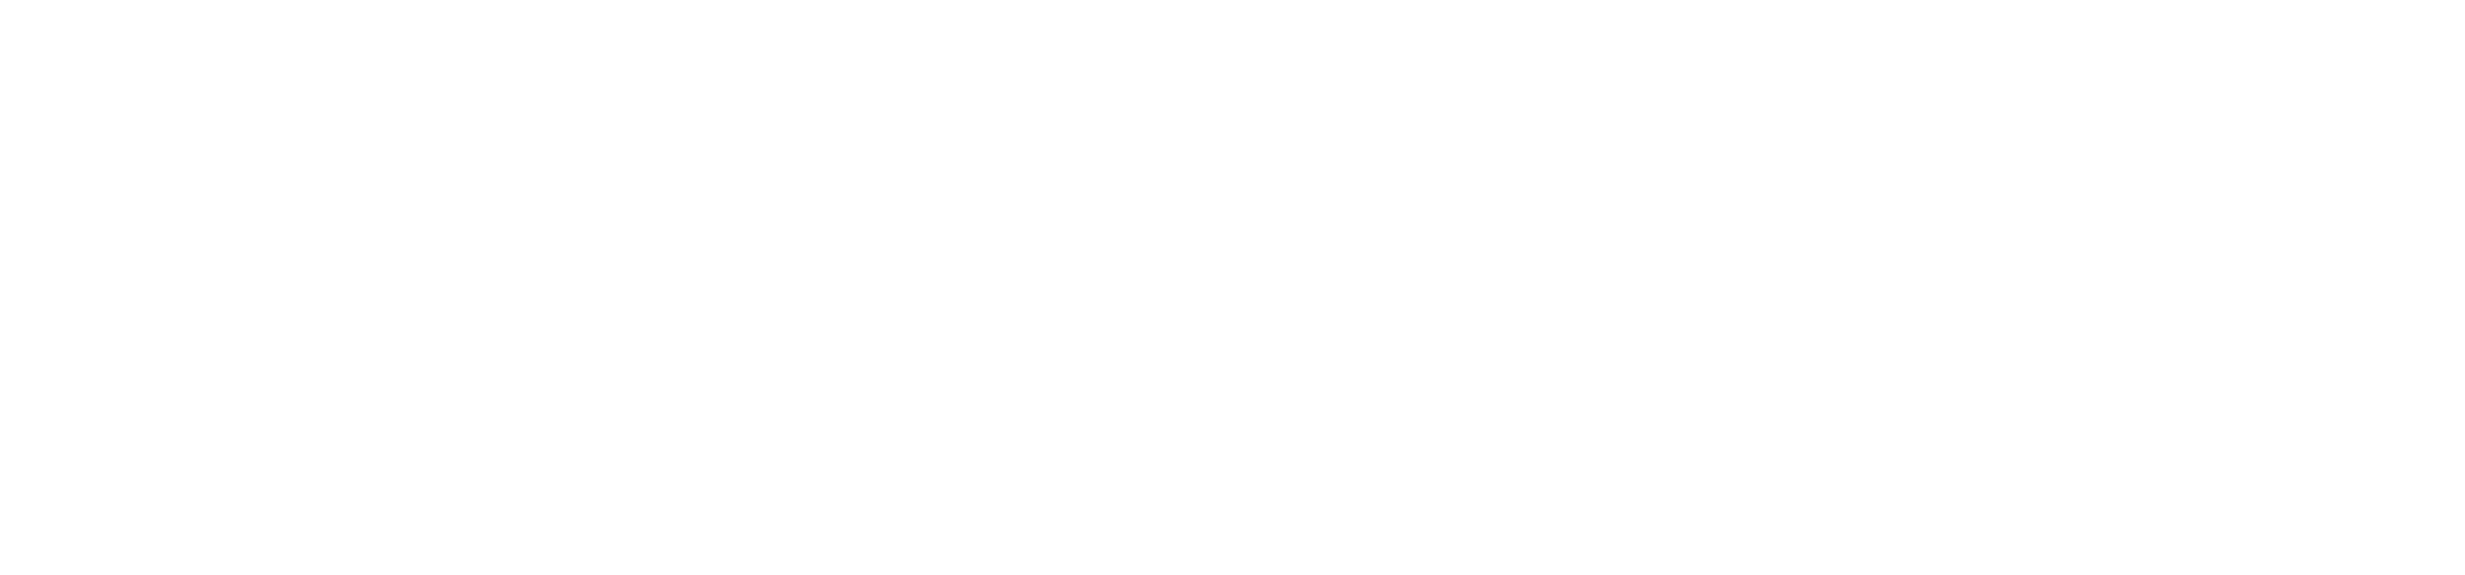 Club Westside